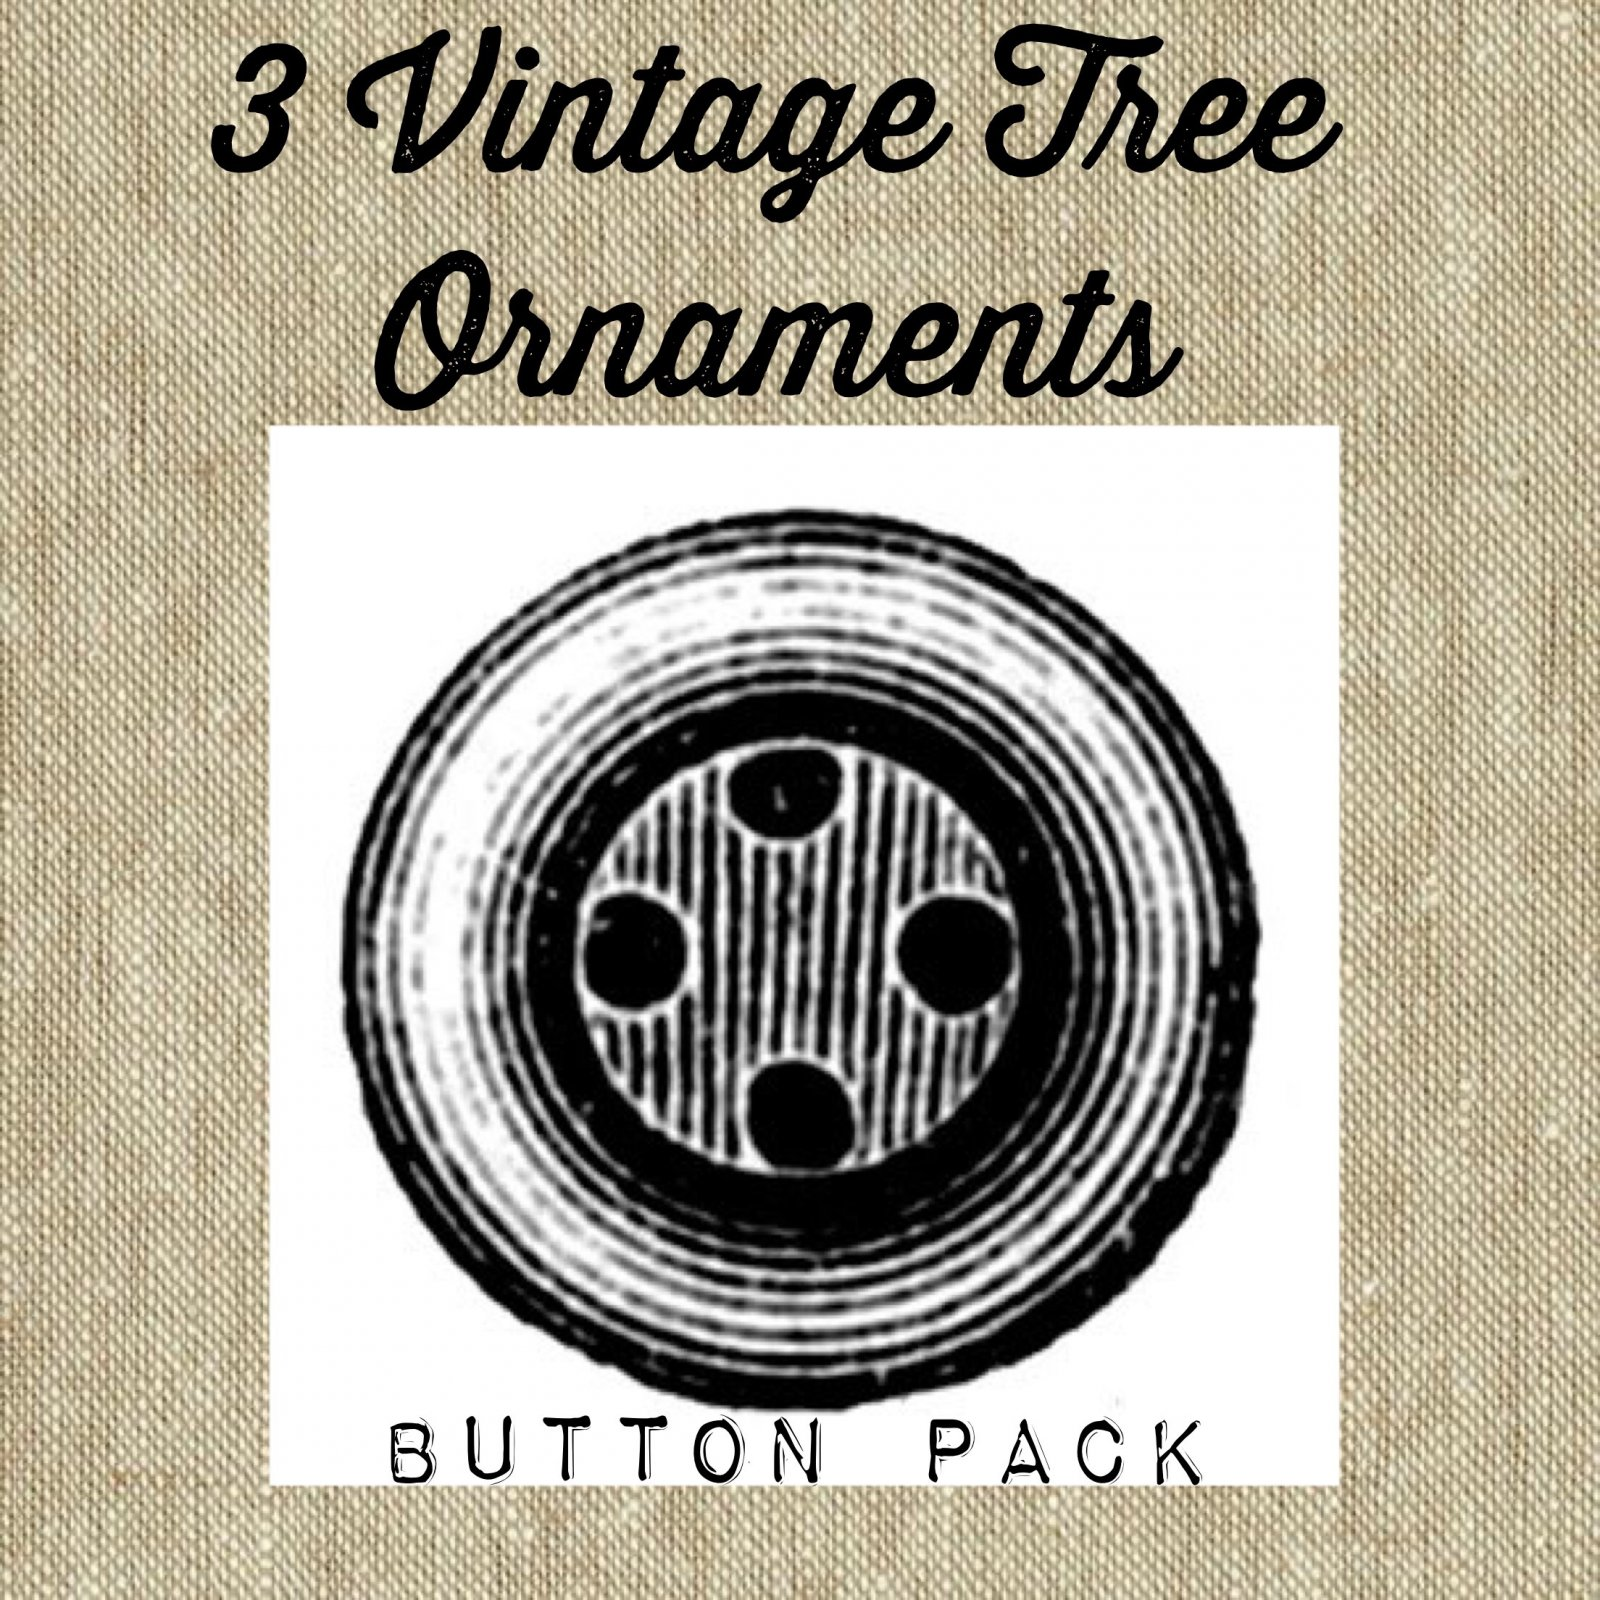 3 Vintage Tree Ornaments Button Pack